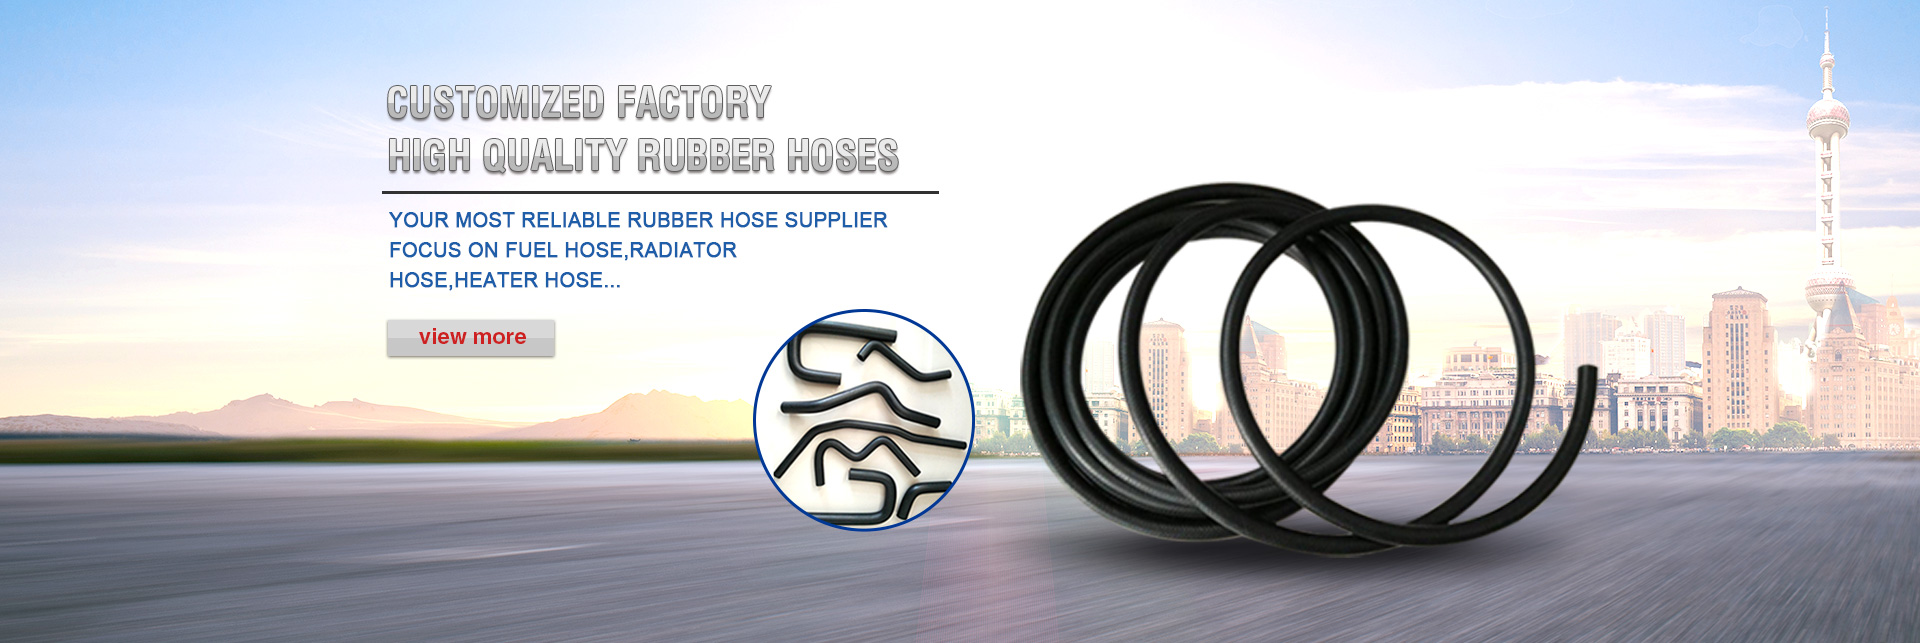 High Quality Rubber Hoses